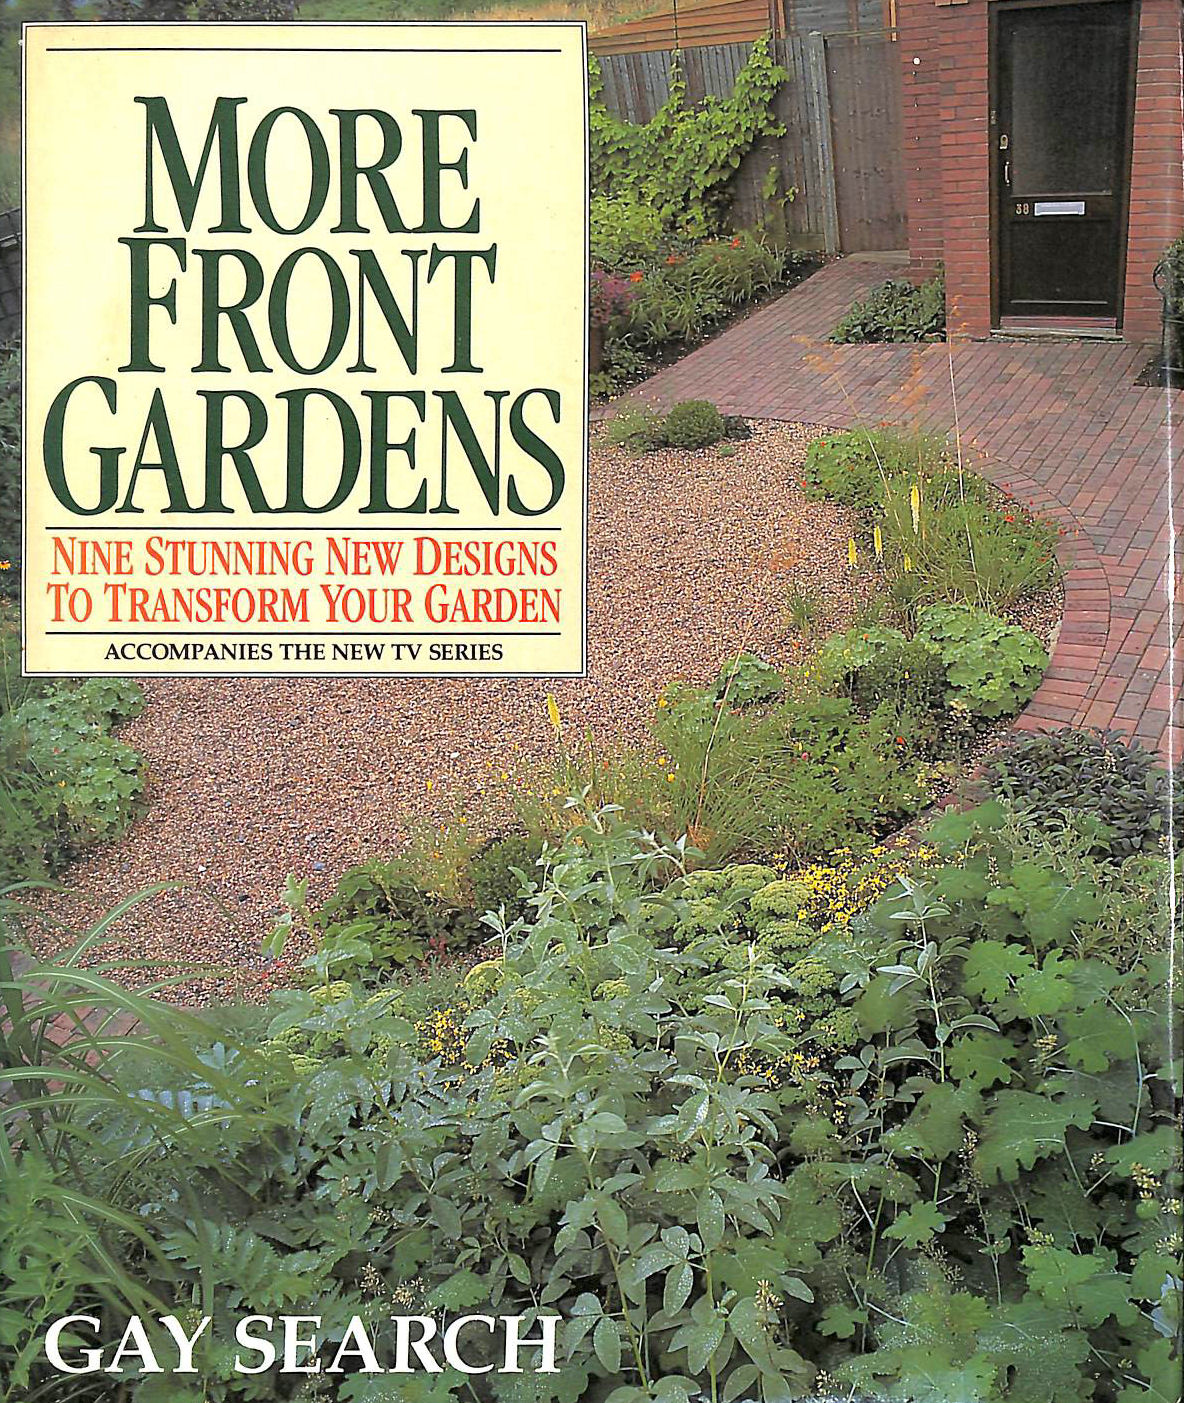 SEARCH, GAY - More Front Gardens